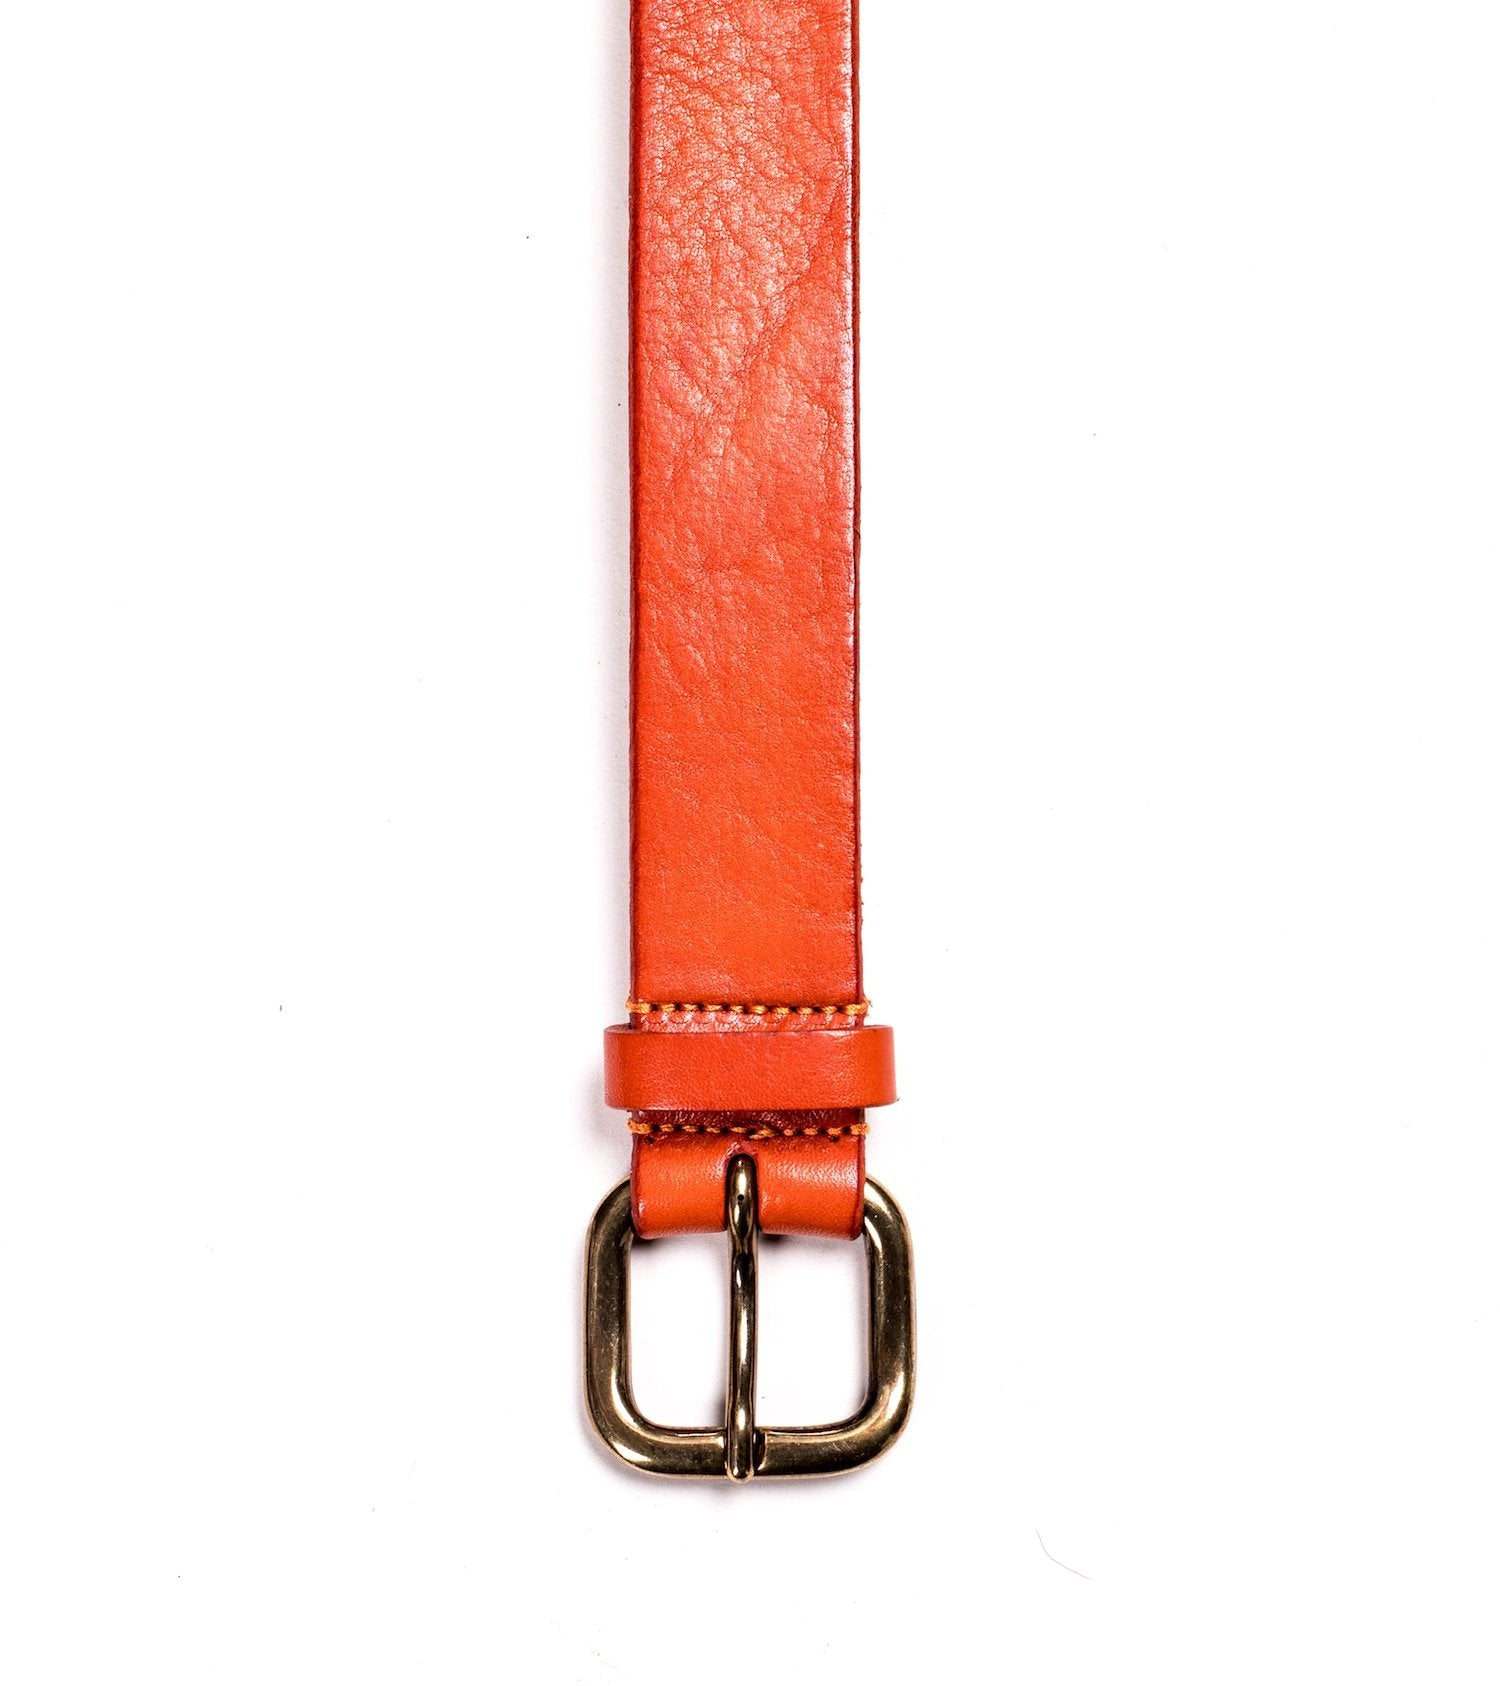 Anderson's Belt - Atacama Clothing